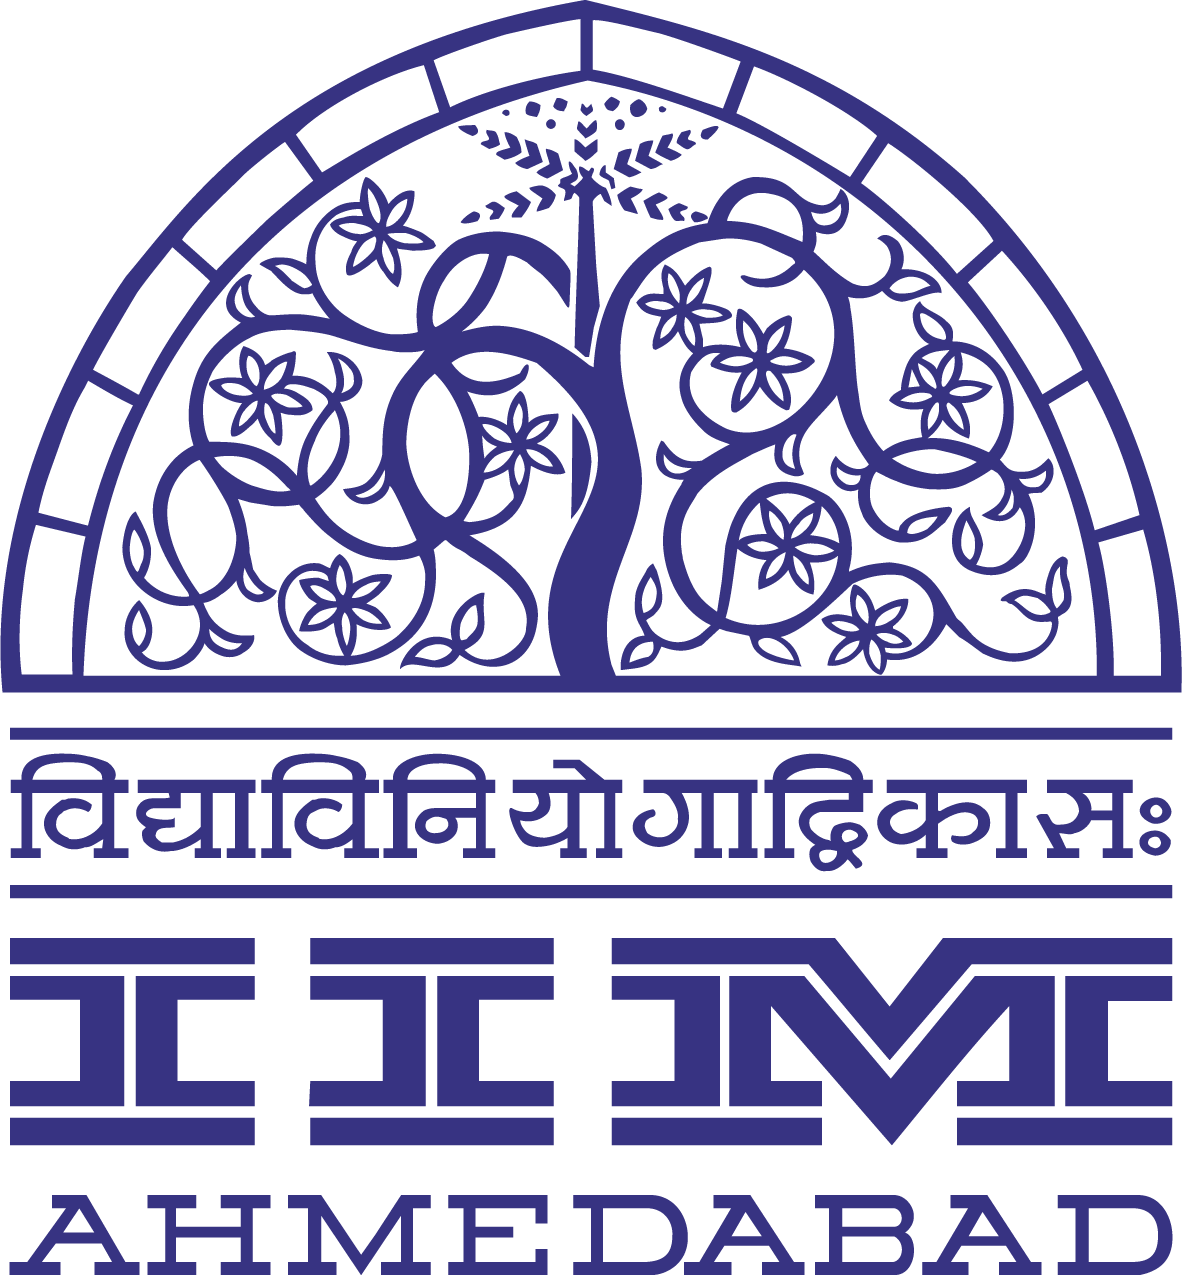 CfP: International Conference on Network Science in Economics & Finance @ IIM Ahmedabad [Dec 8-10]: Submit by Sep 30